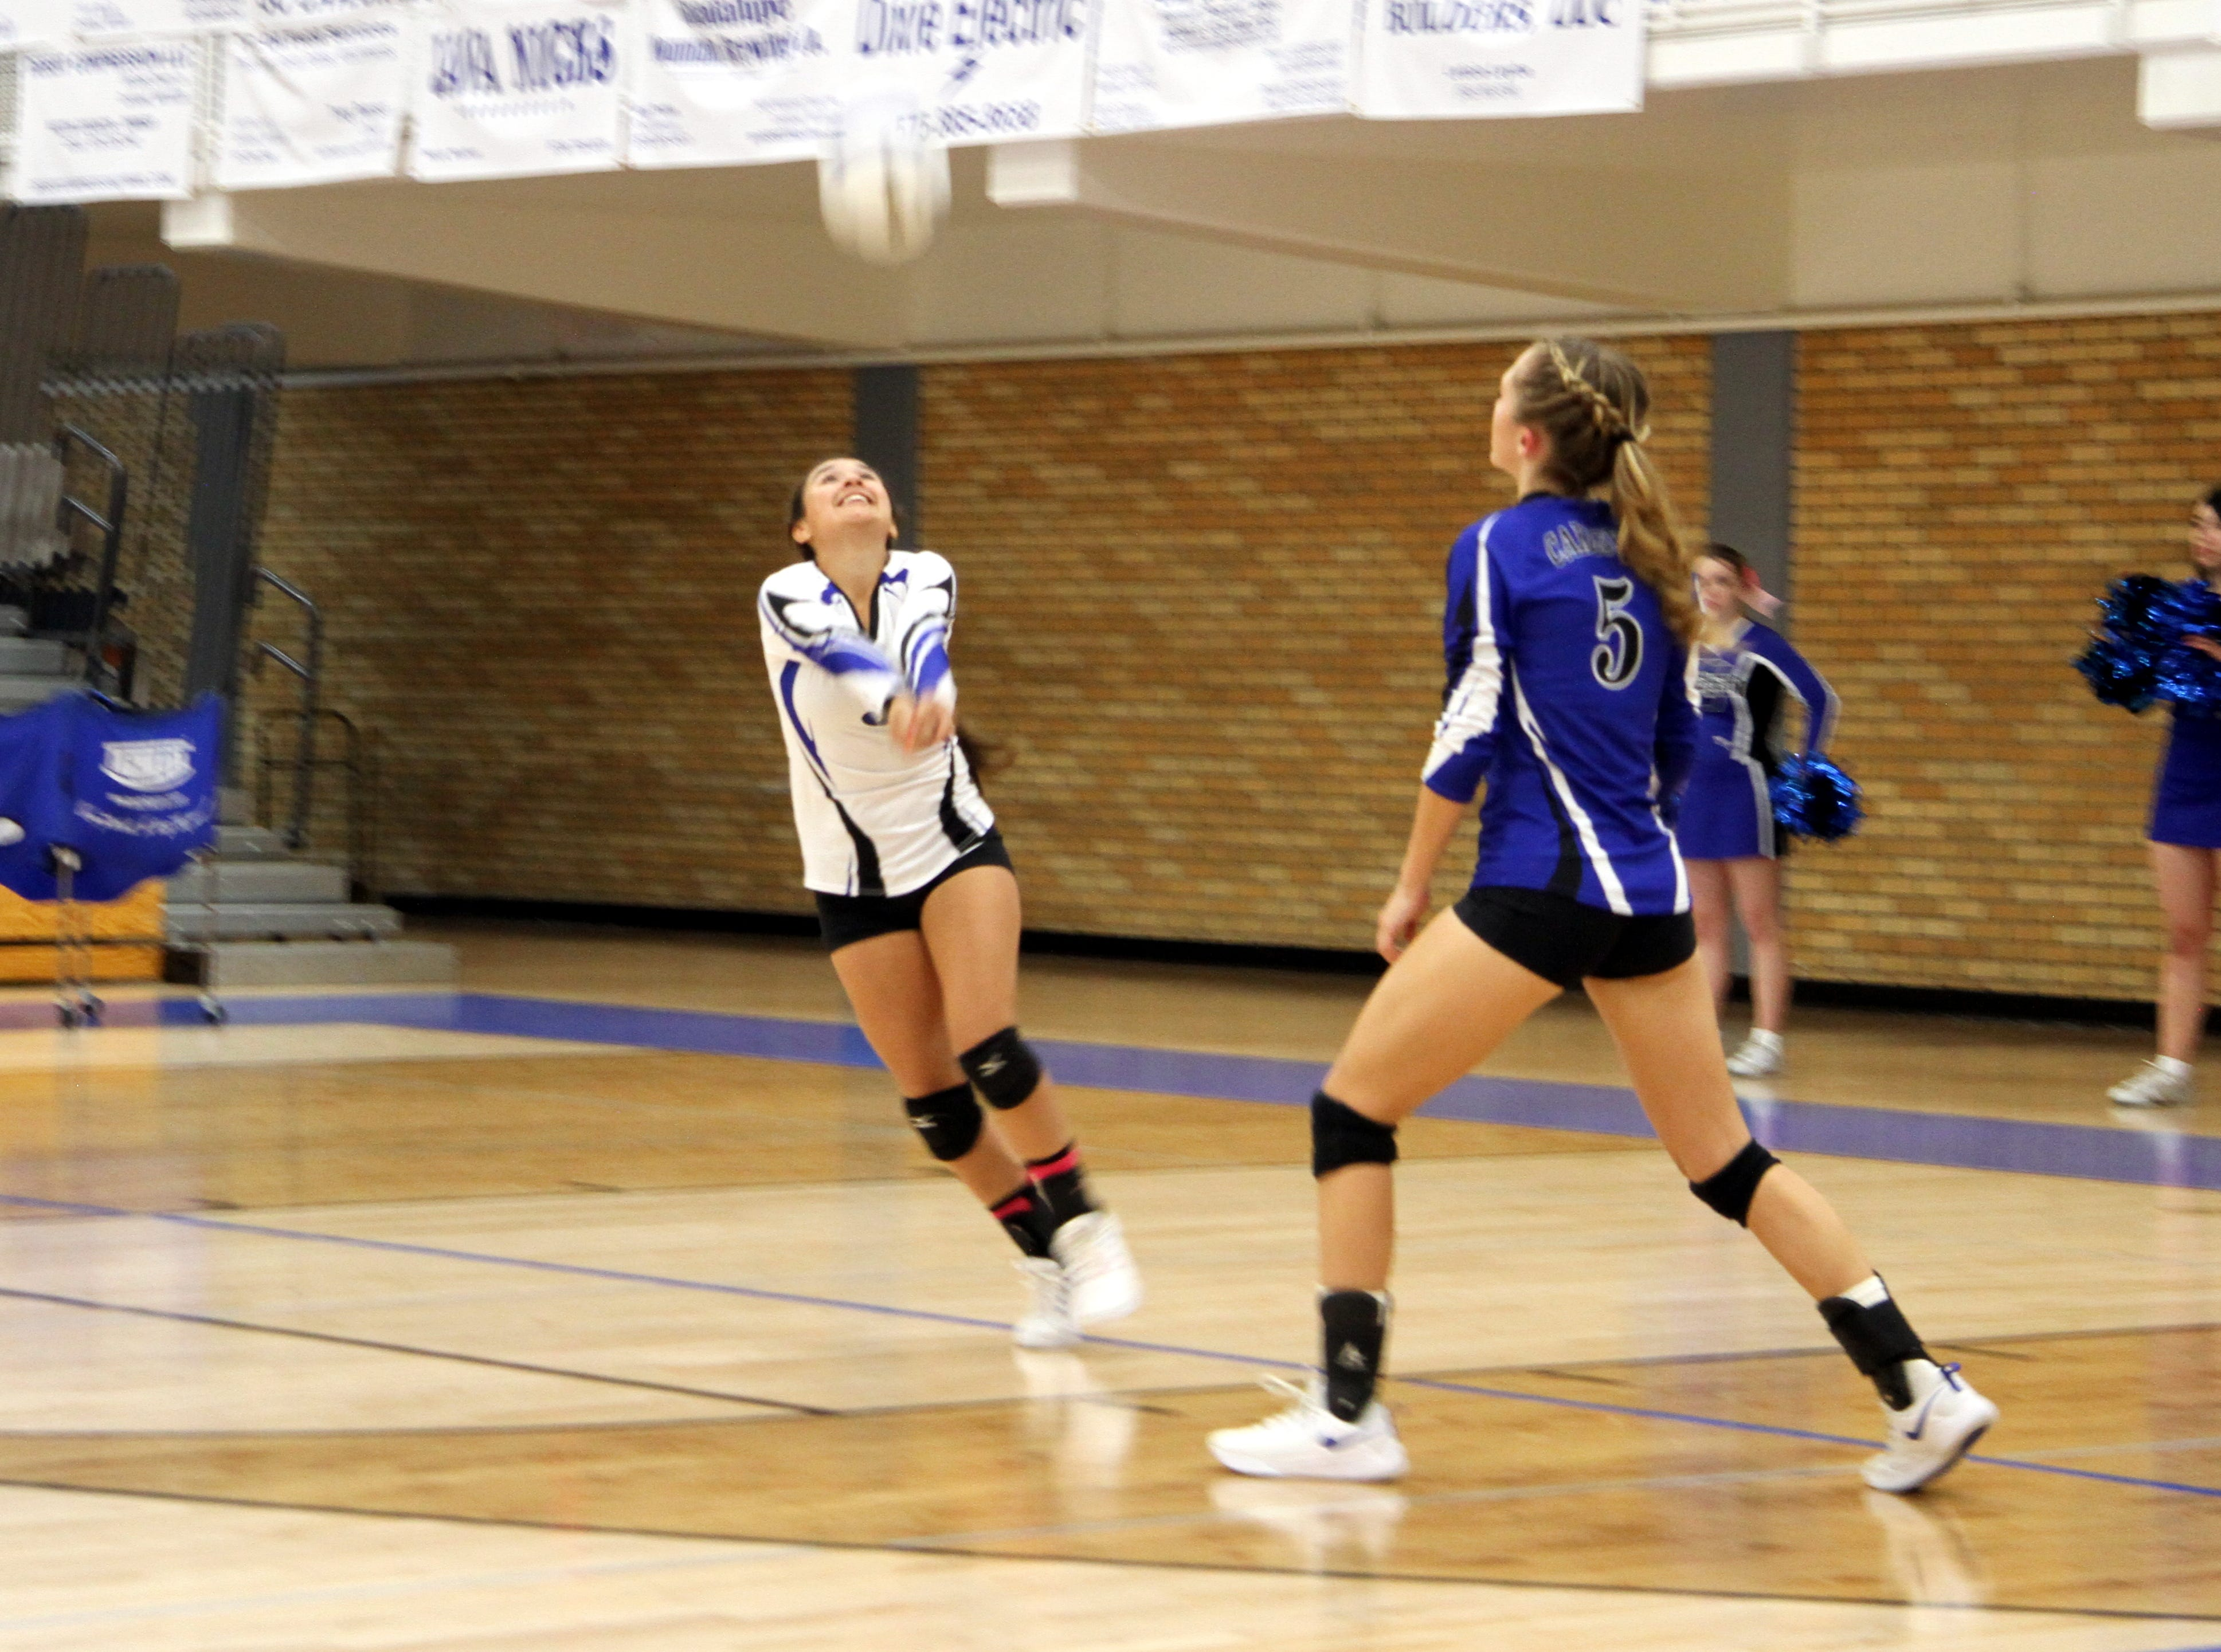 Marissa Reyes goes for a dig during Tuesday's match against Hobbs.